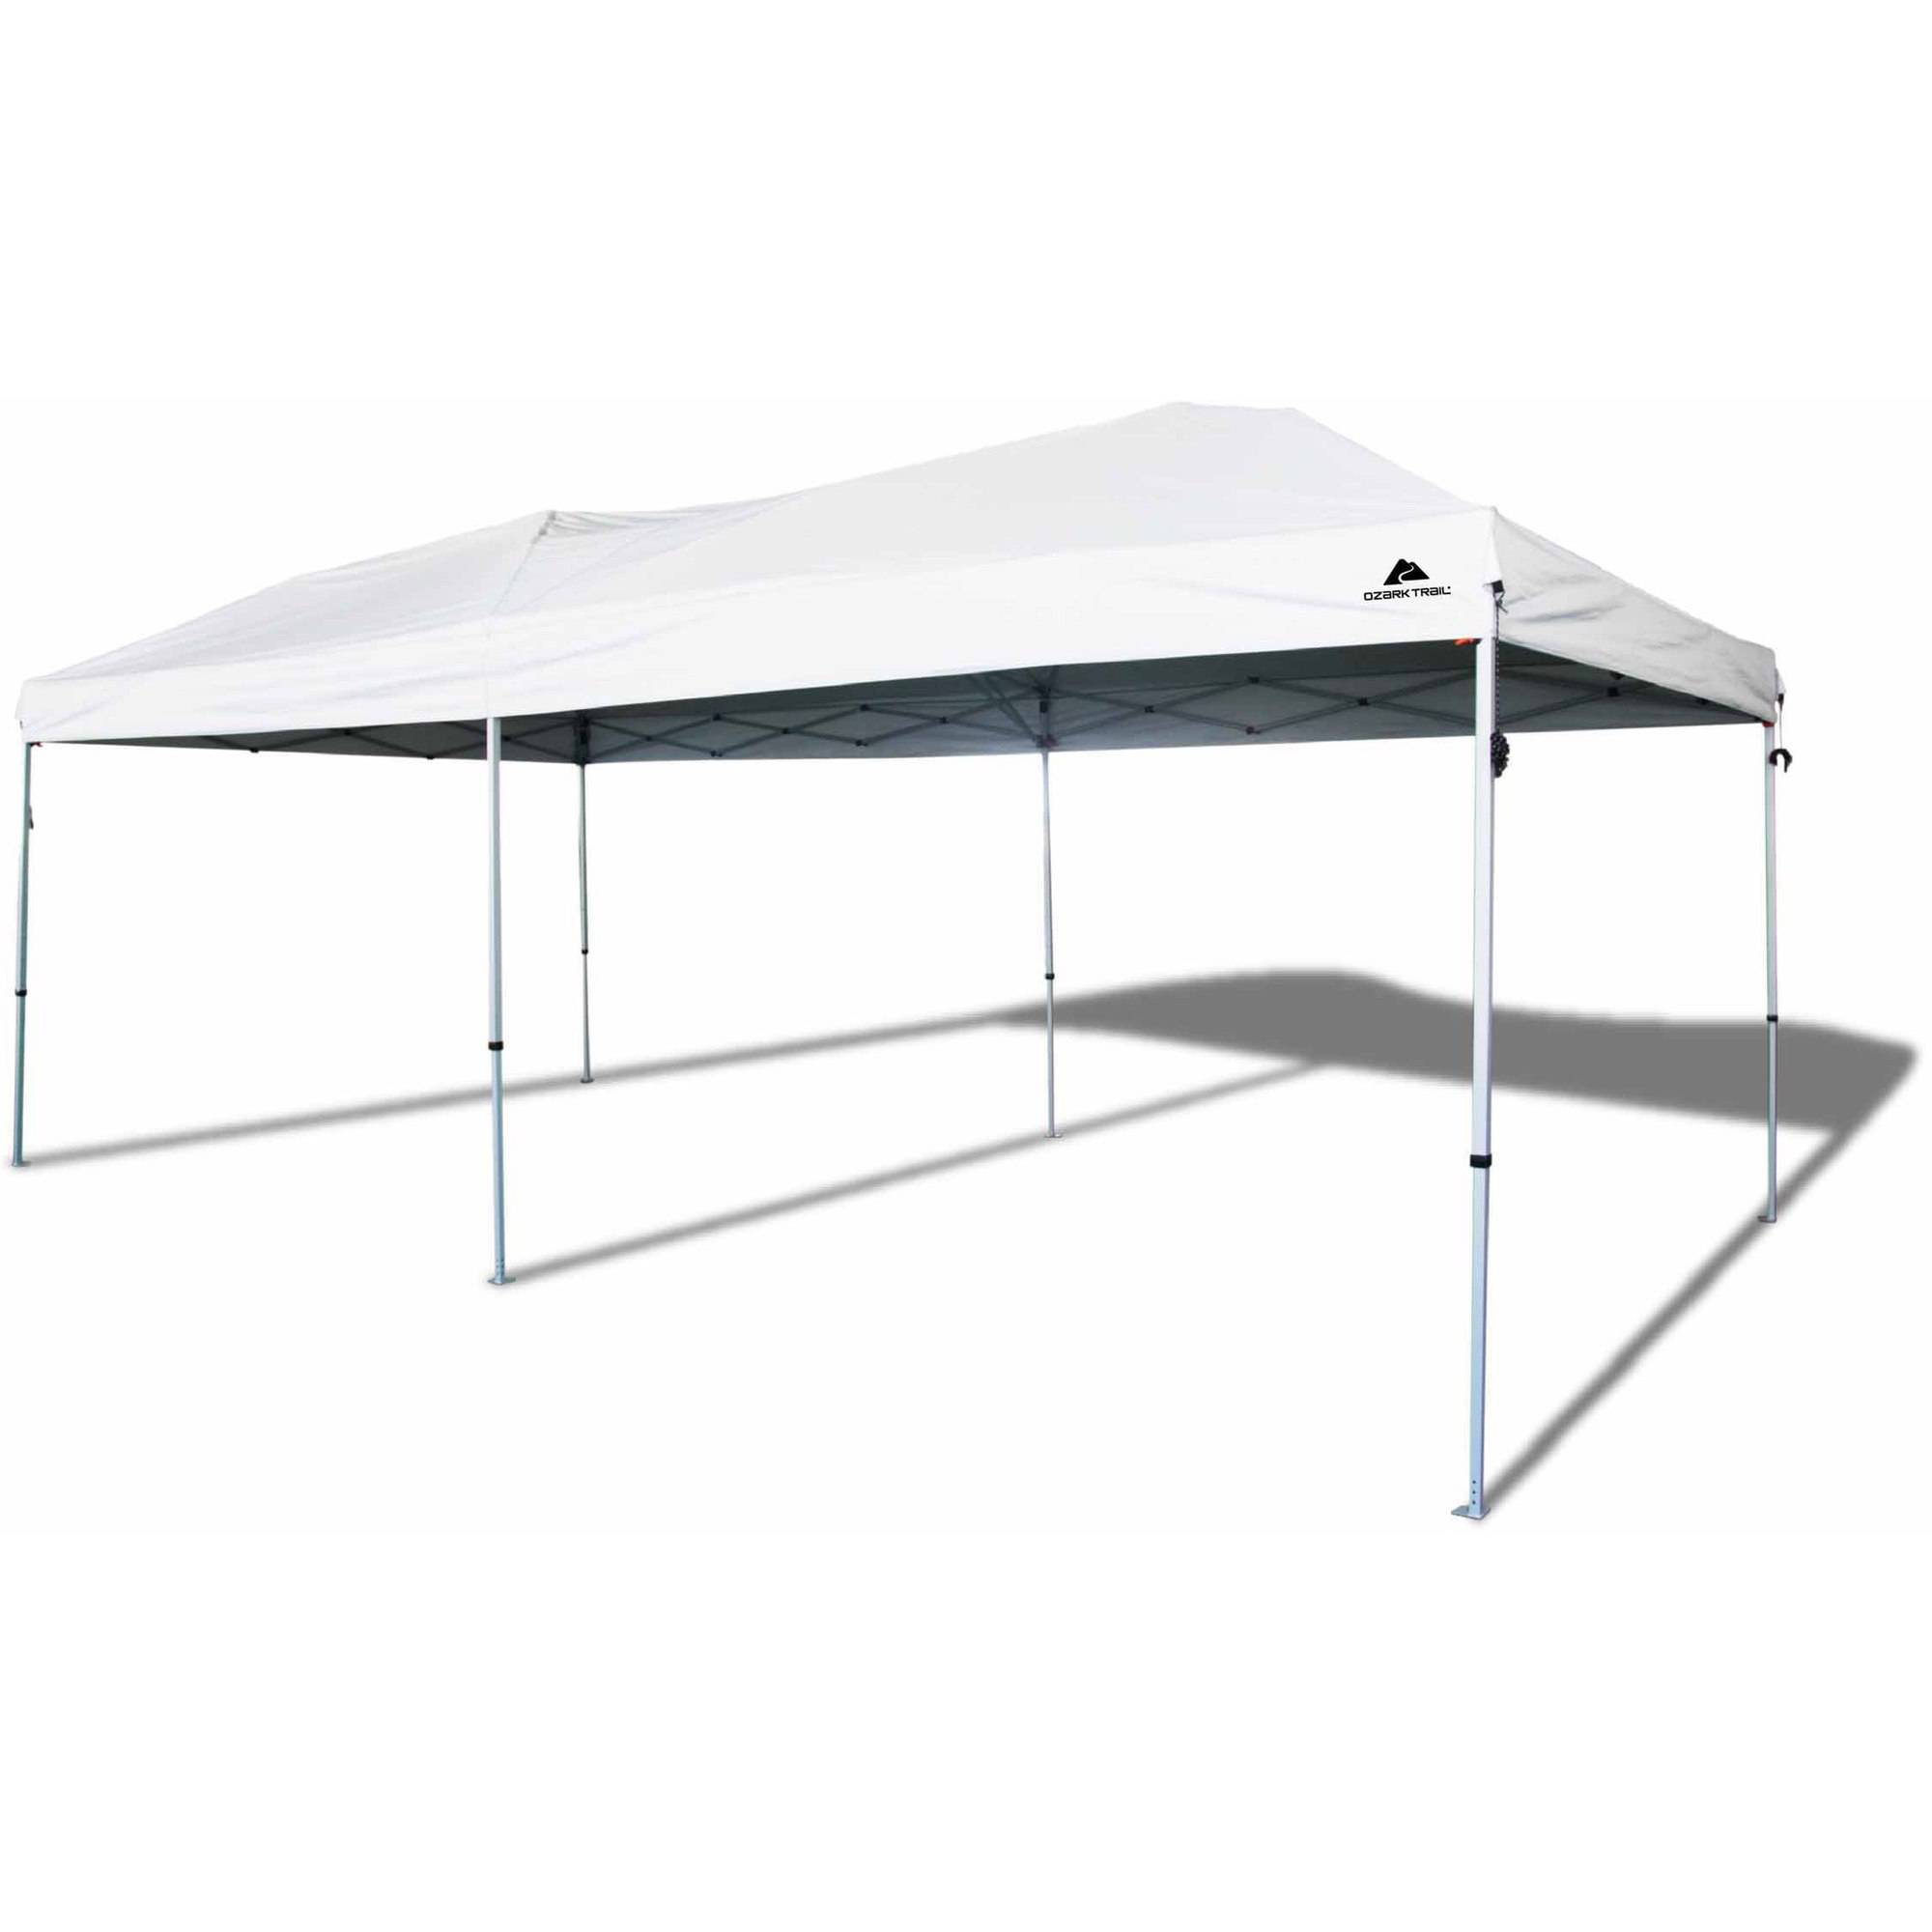 Ozark Trail 20x10 Straight Leg Instant Canopy (200 sq. ft Coverage)  sc 1 st  Walmart.com & Ozark Trail 20x10 Straight Leg Instant Canopy (200 sq. ft Coverage ...